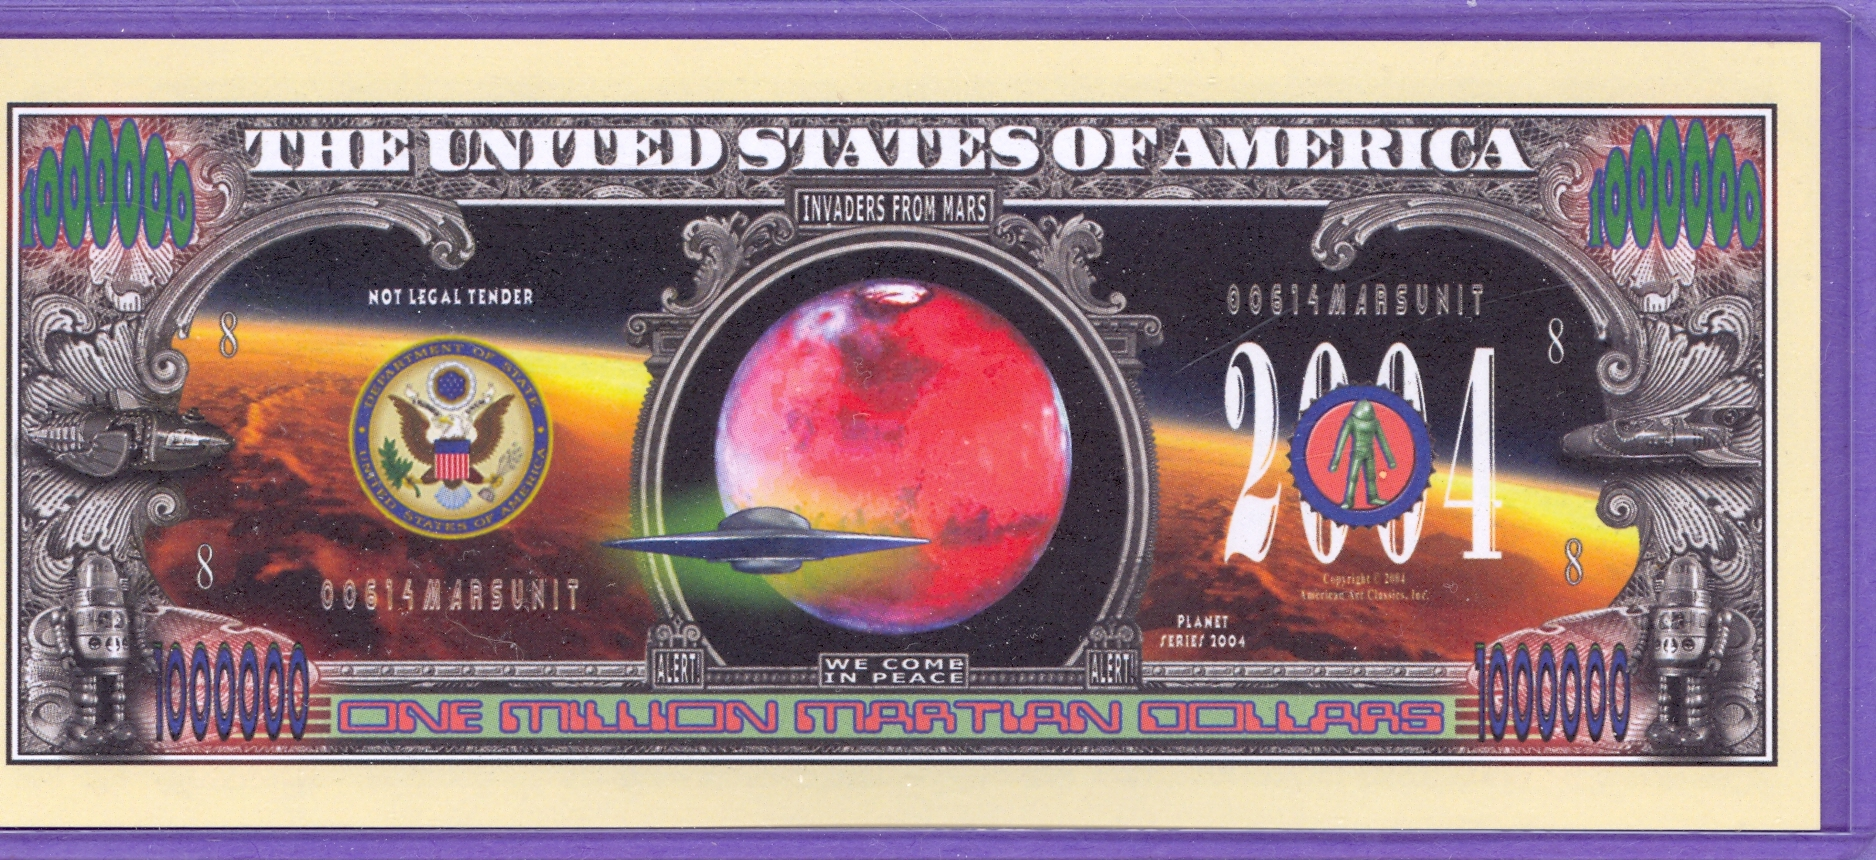 2004 Martian $1,000,000 Novelty Note